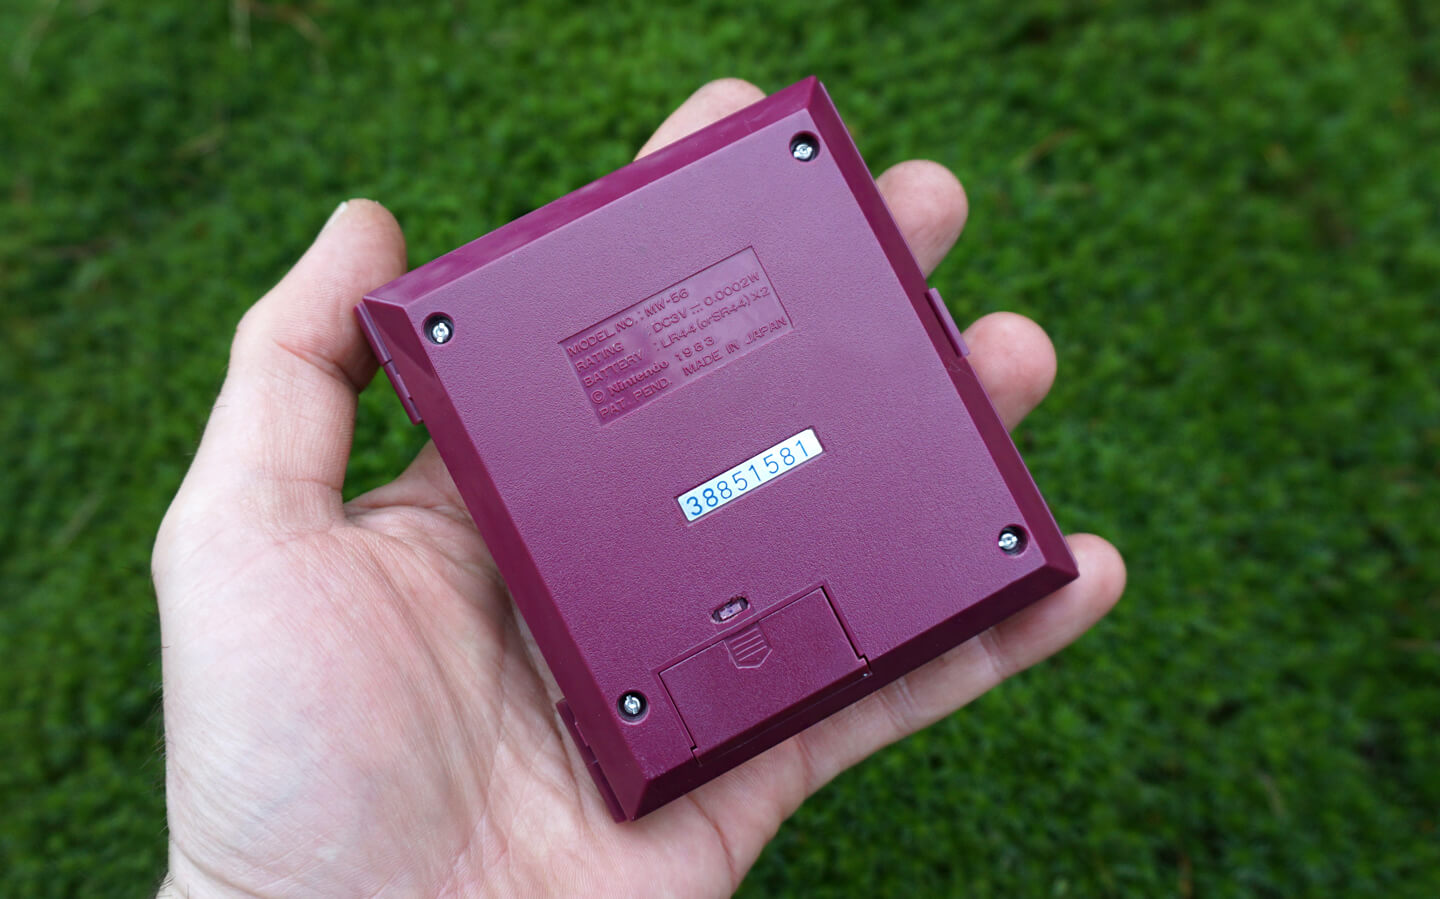 Handheld spelconsole